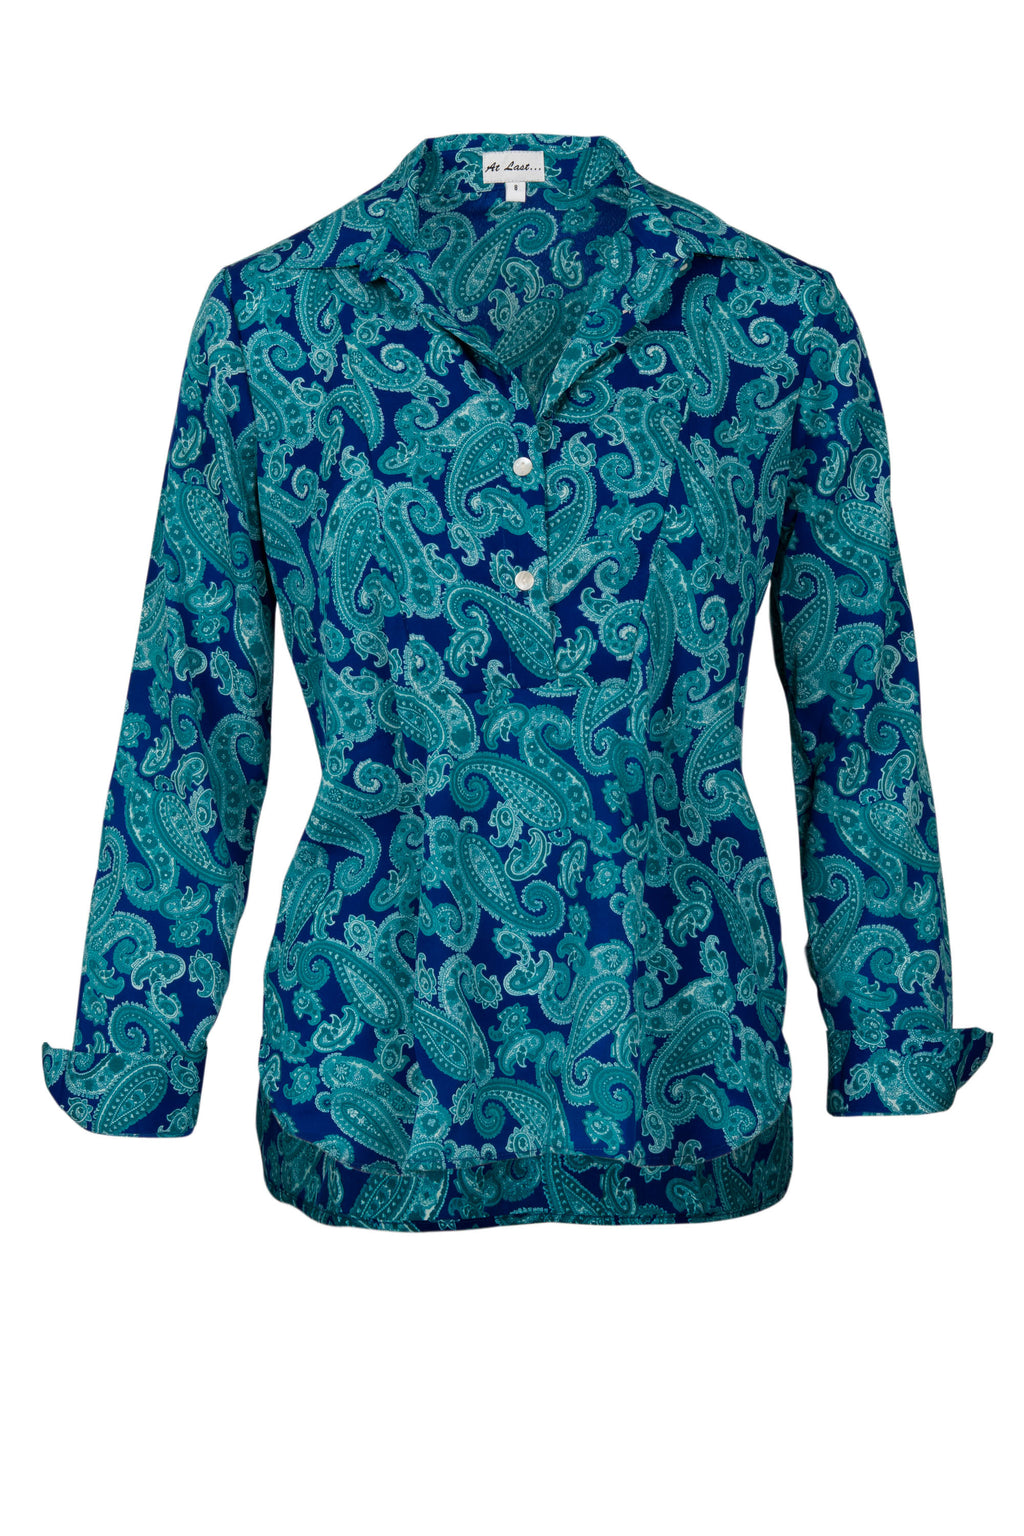 Soho Shirt with Back Detail - Turquoise and Royal